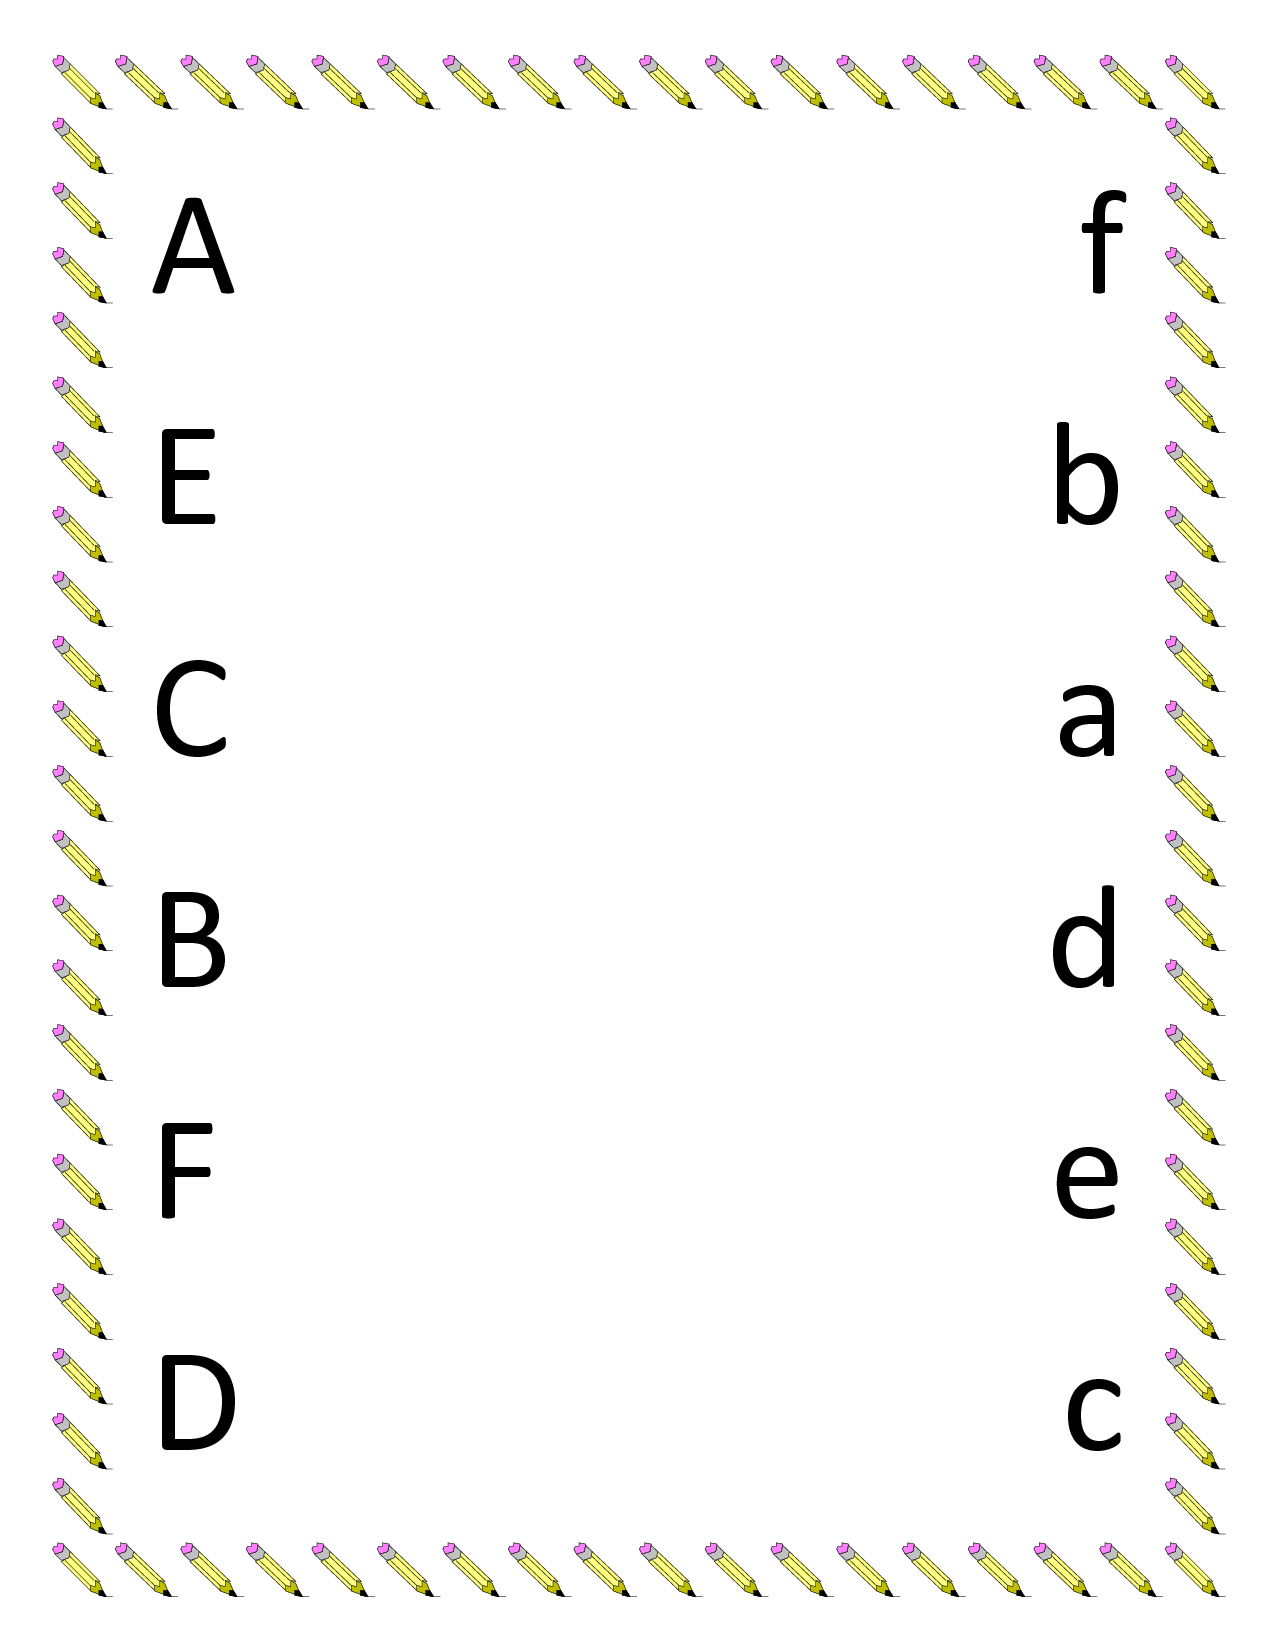 Kindergarten Worksheets | Preschool Matching Worksheets - Upper | Abc Matching Worksheets Printable